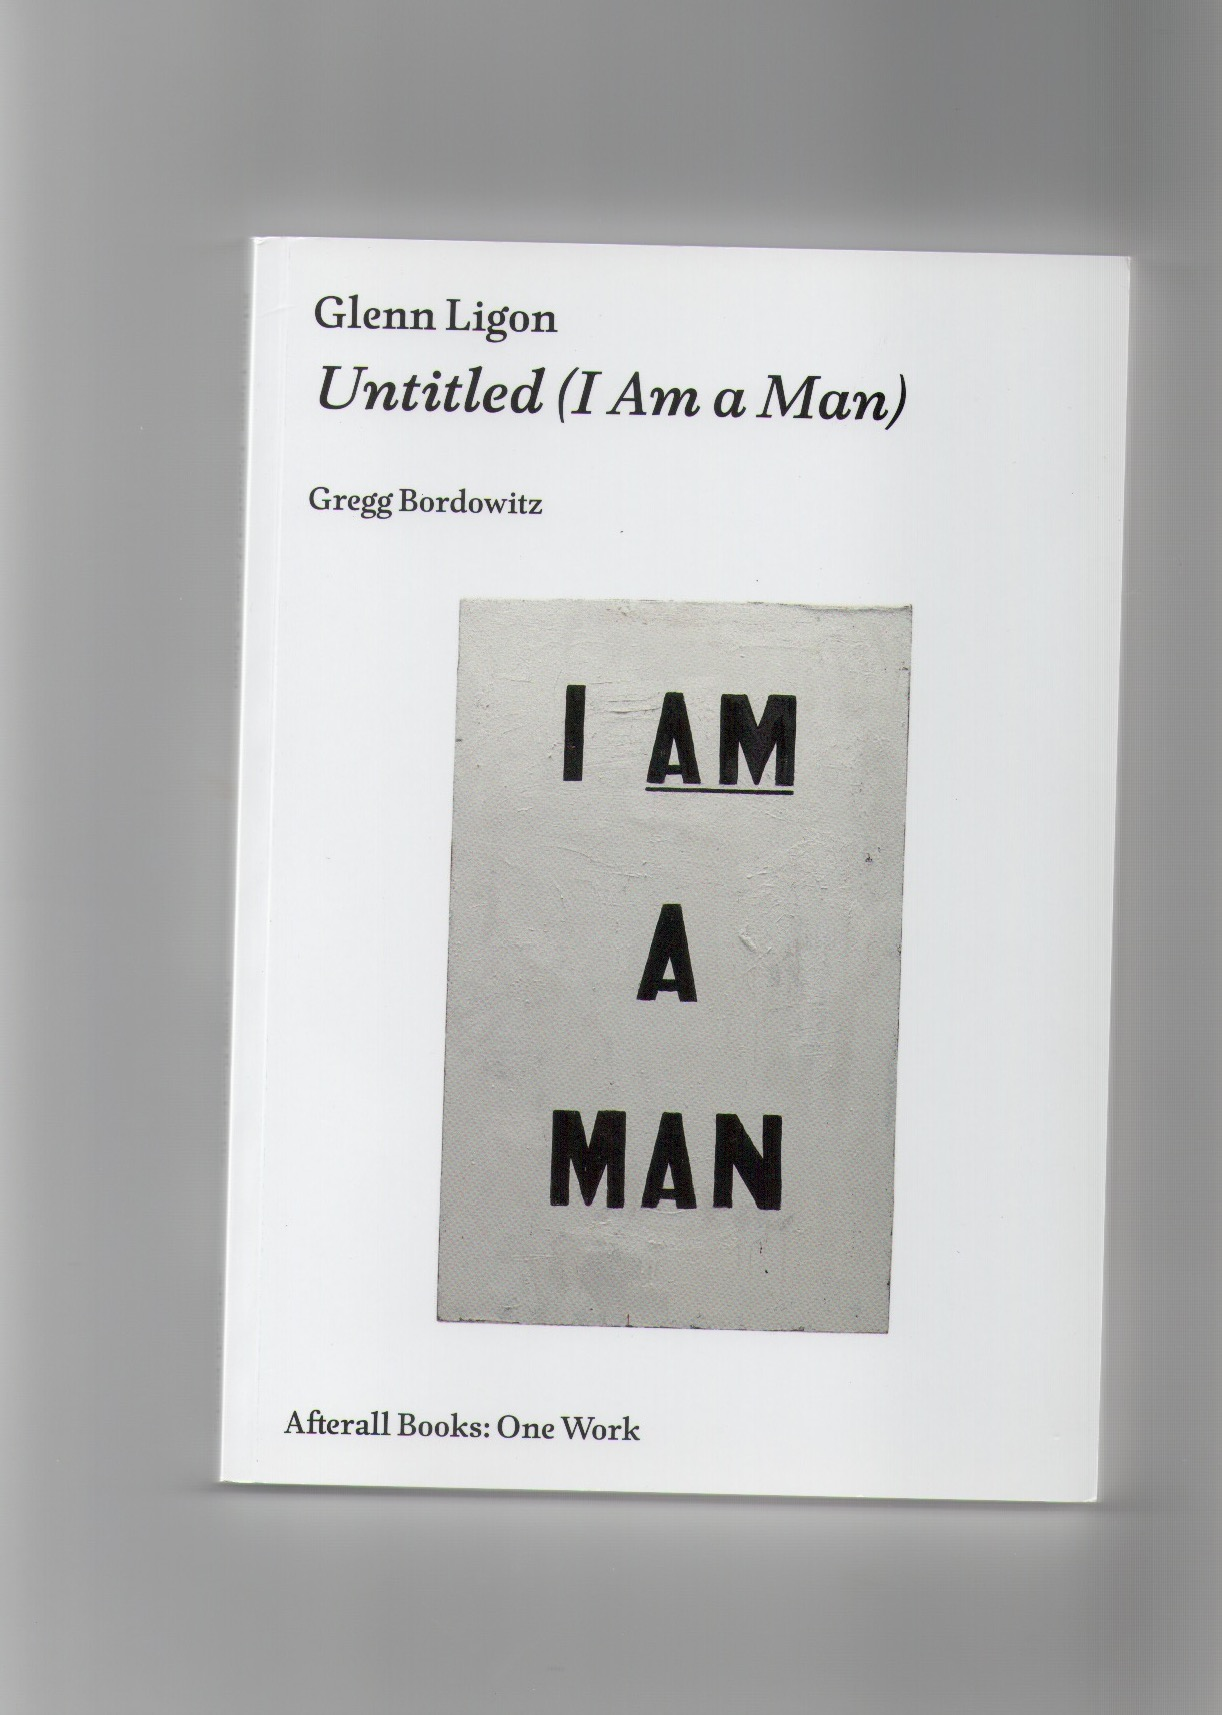 BORDOWITZ, Gregg - Glenn Ligon: Untitled (I Am a Man)